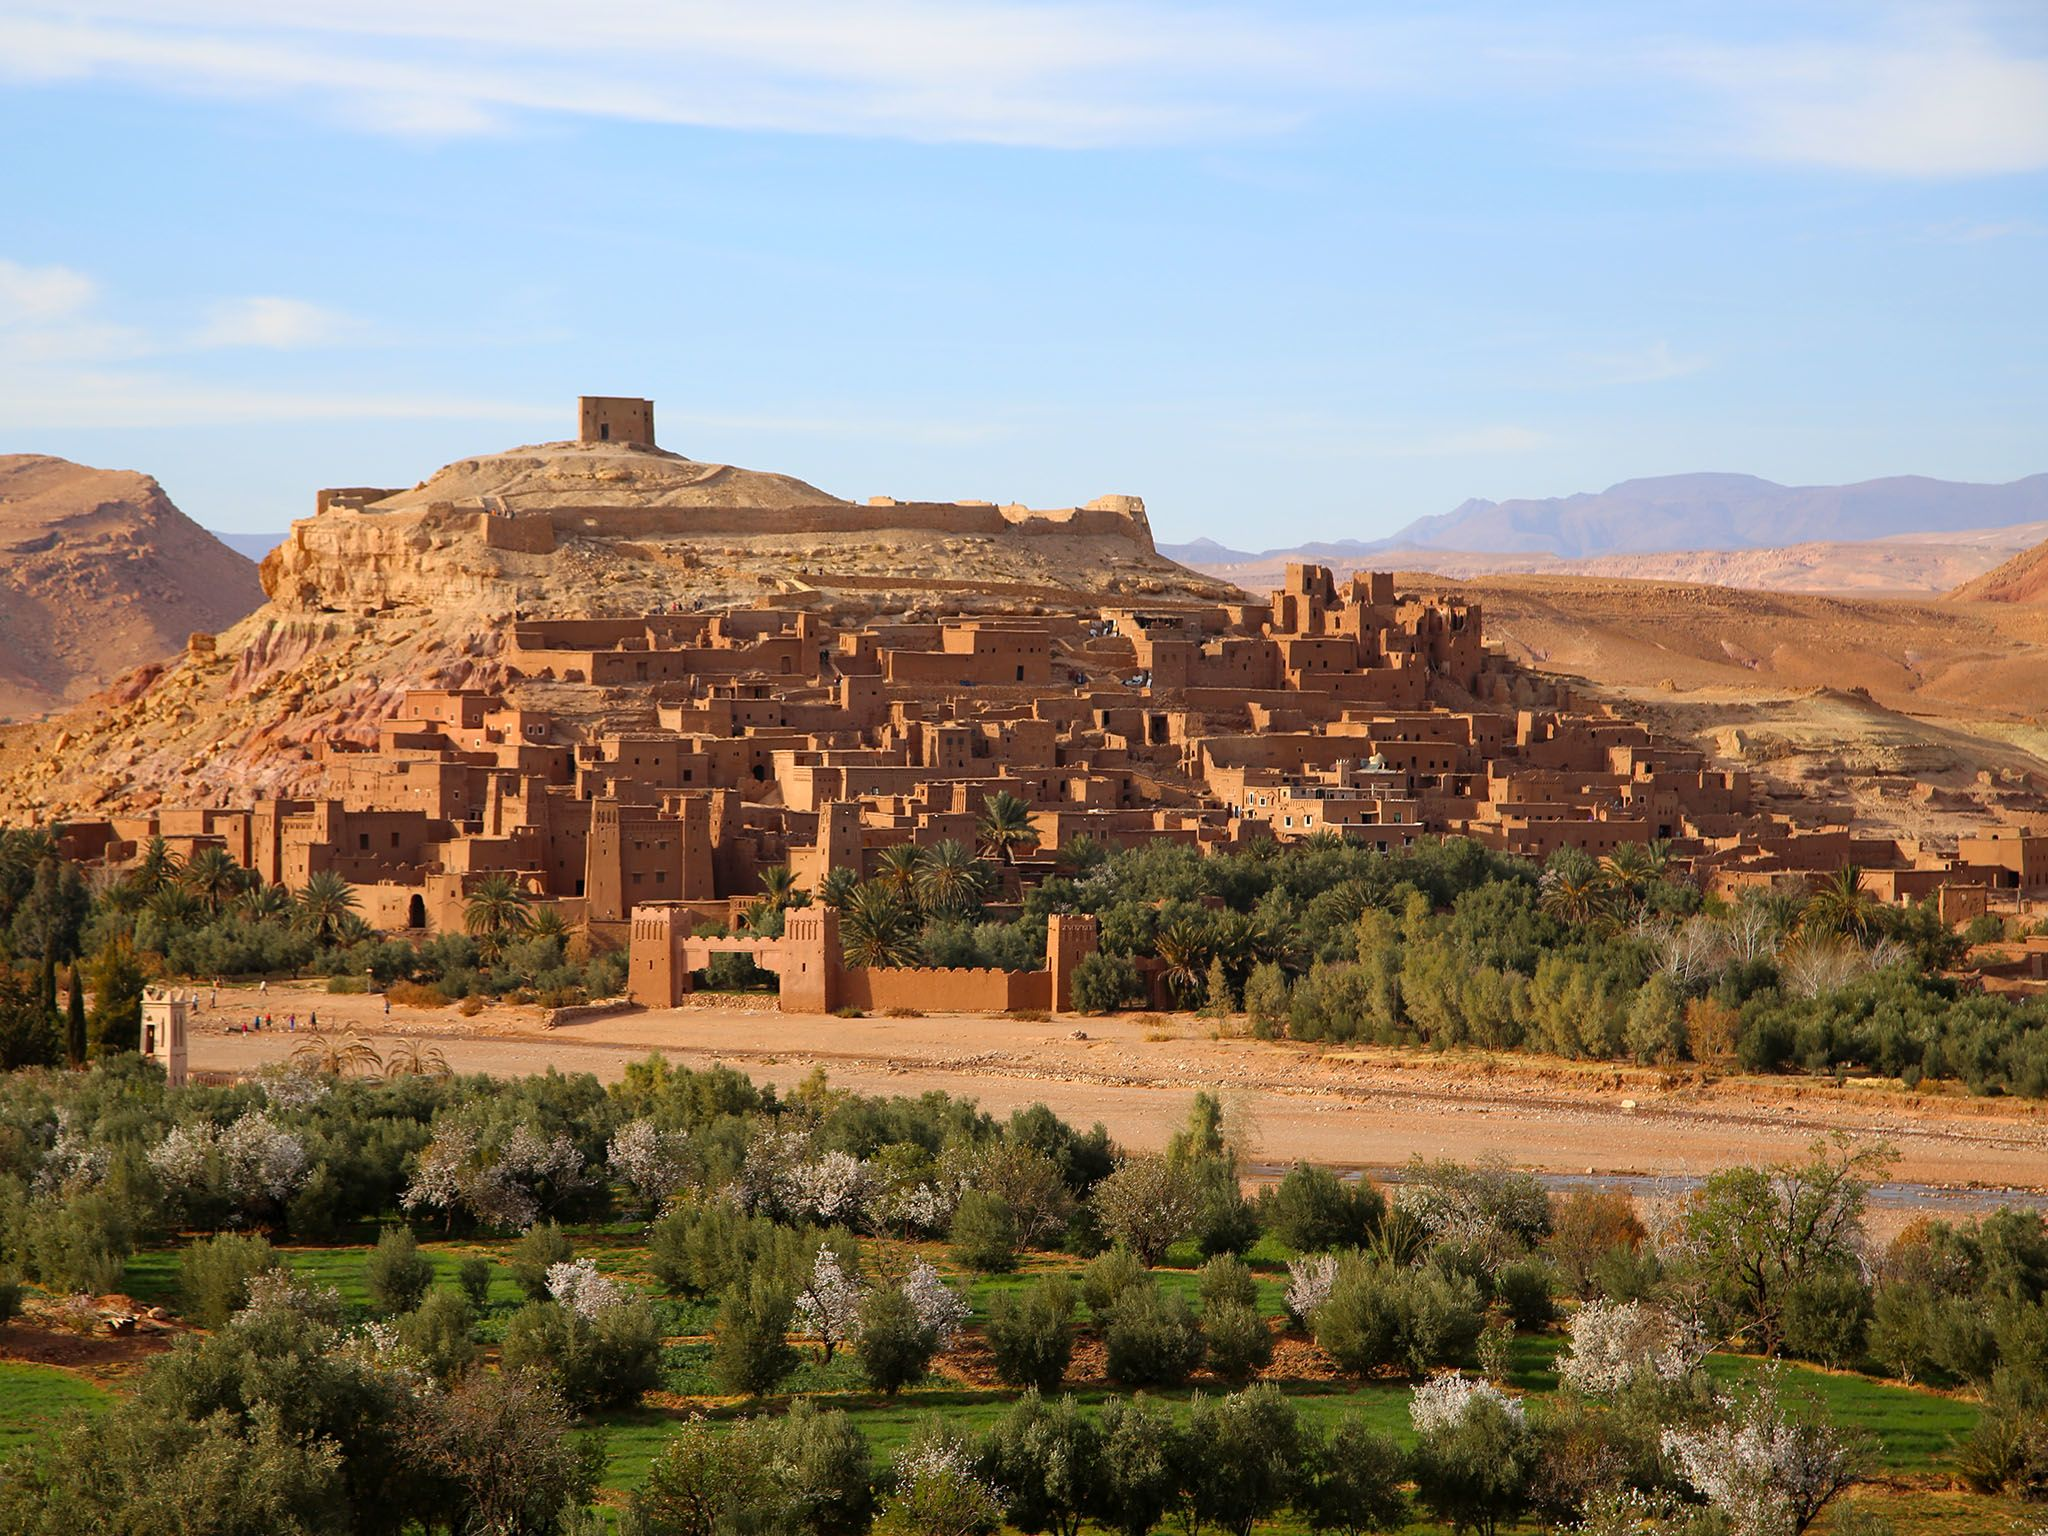 Ait Benhaddou, Morocco: The Ksar of Ait Benhaddou. This image is from Riding Morocco: Chasing... [Photo of the day - ژوئن 2016]